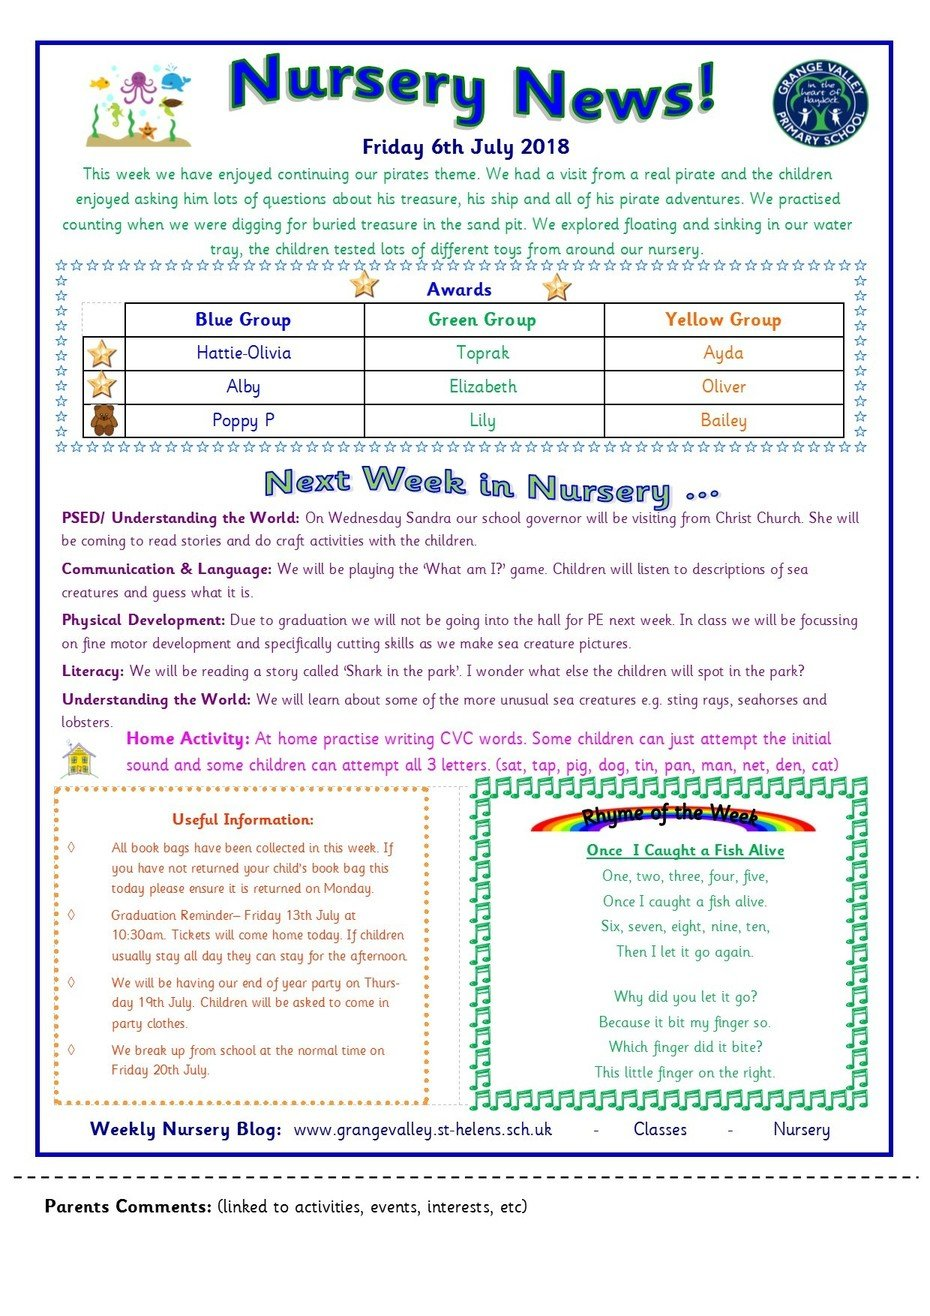 Grange Valley Primary School and Nursery - Nursery Blog